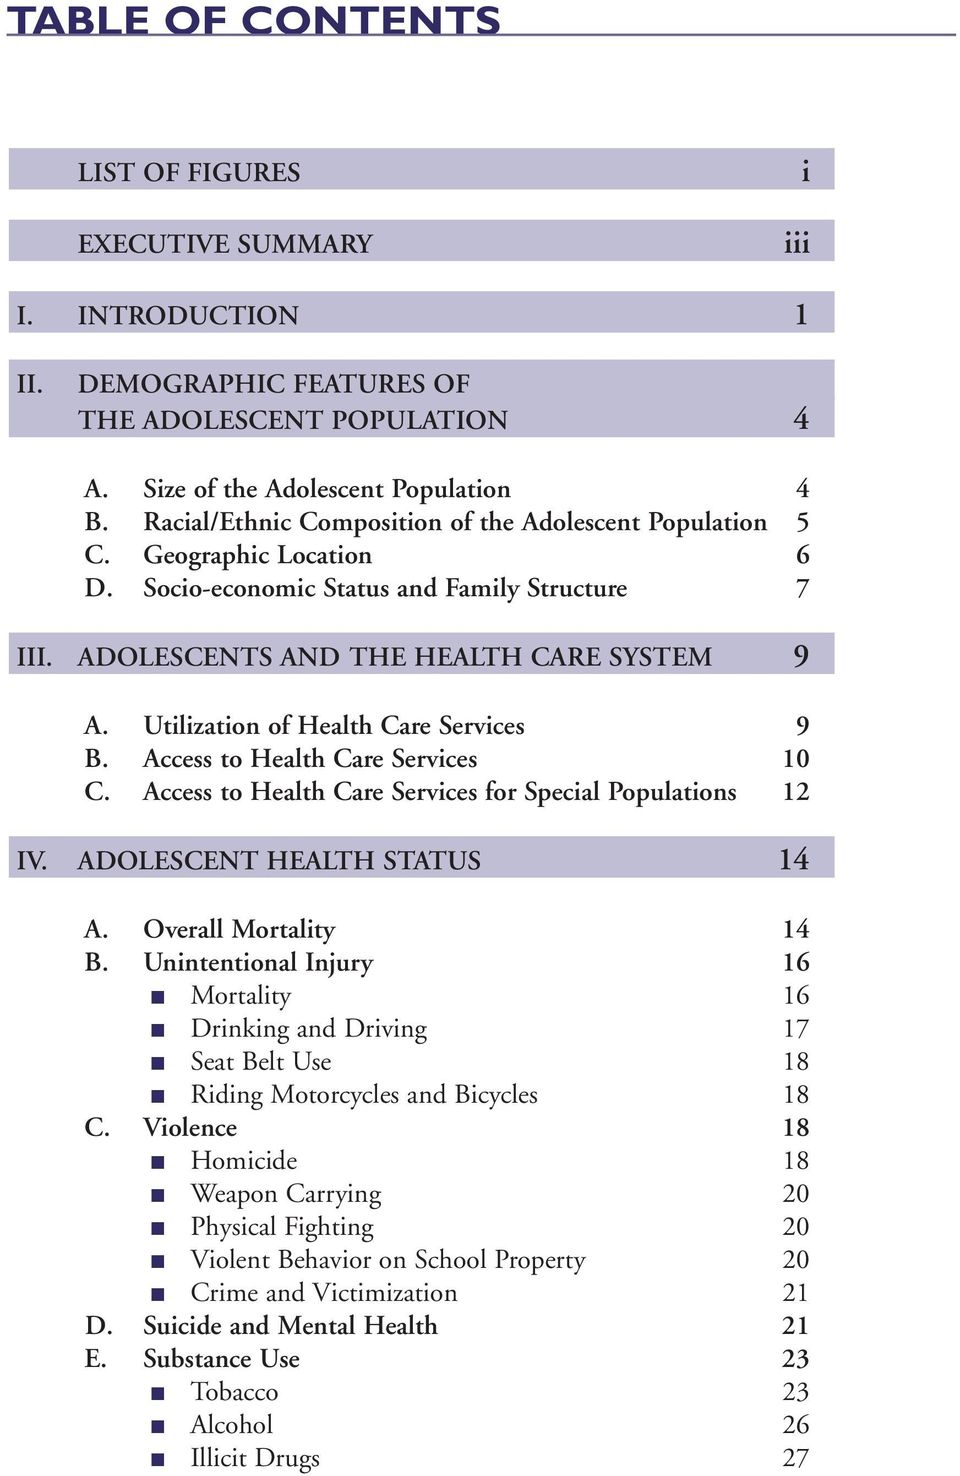 Utilization of Health Care Services 9 B. Access to Health Care Services 10 C. Access to Health Care Services for Special Populations 12 IV. ADOLESCENT HEALTH STATUS 14 A. Overall Mortality 14 B.